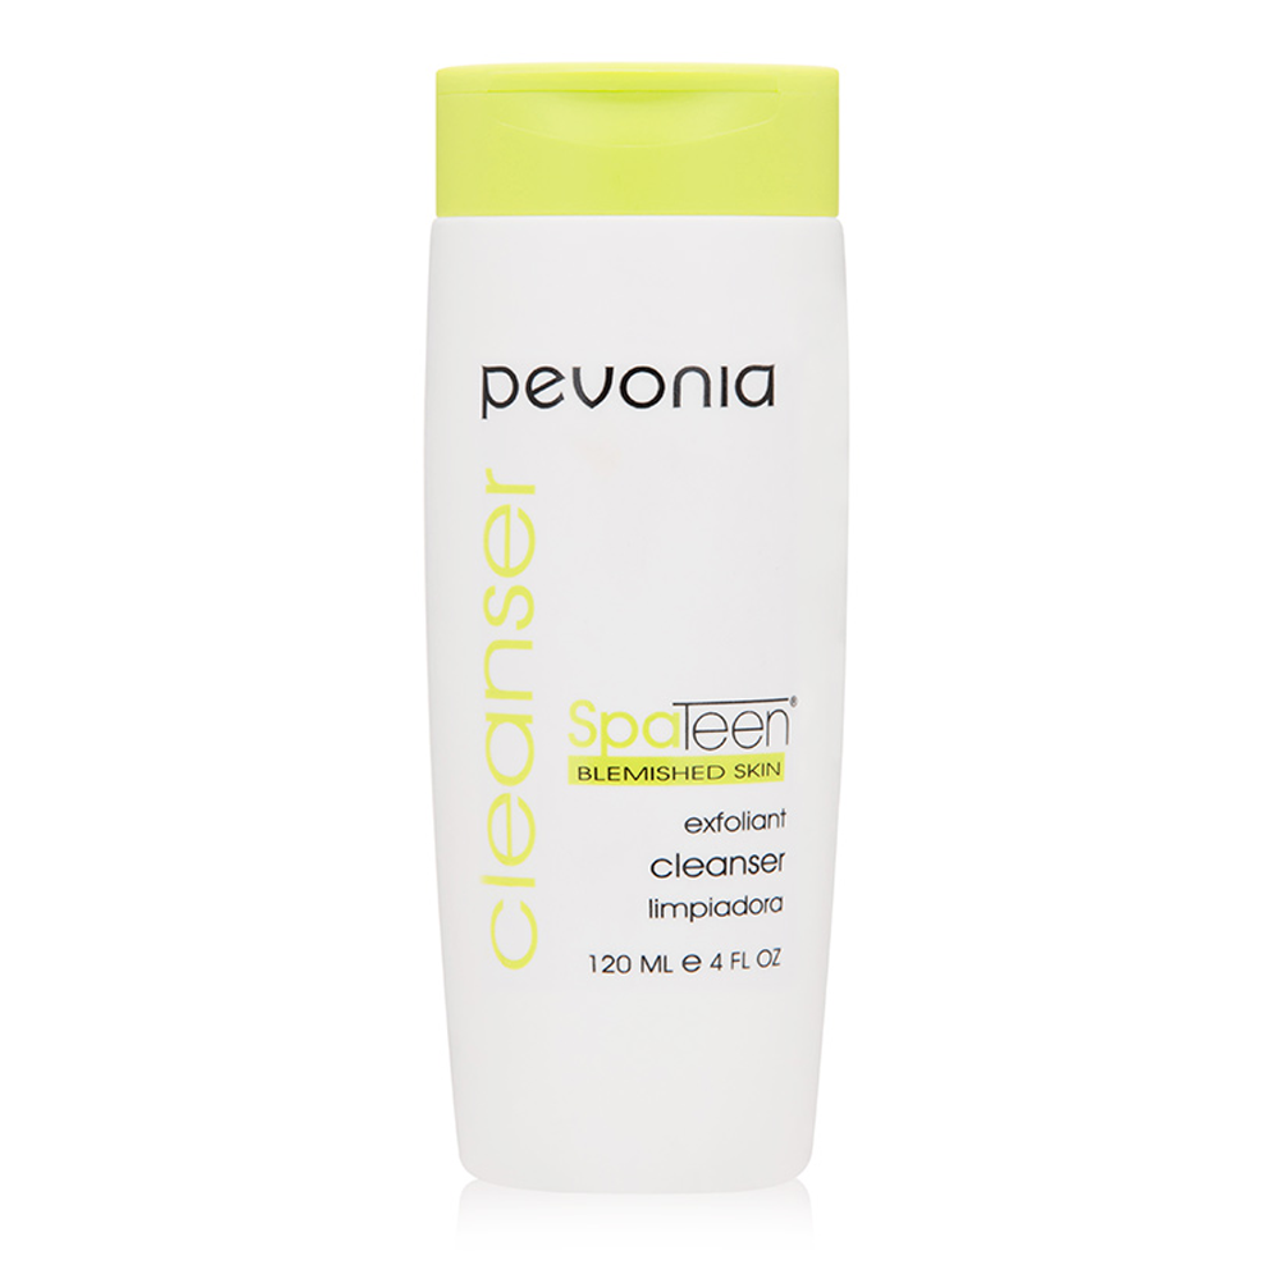 Pevonia SpaTeen Blemished Skin Cleanser